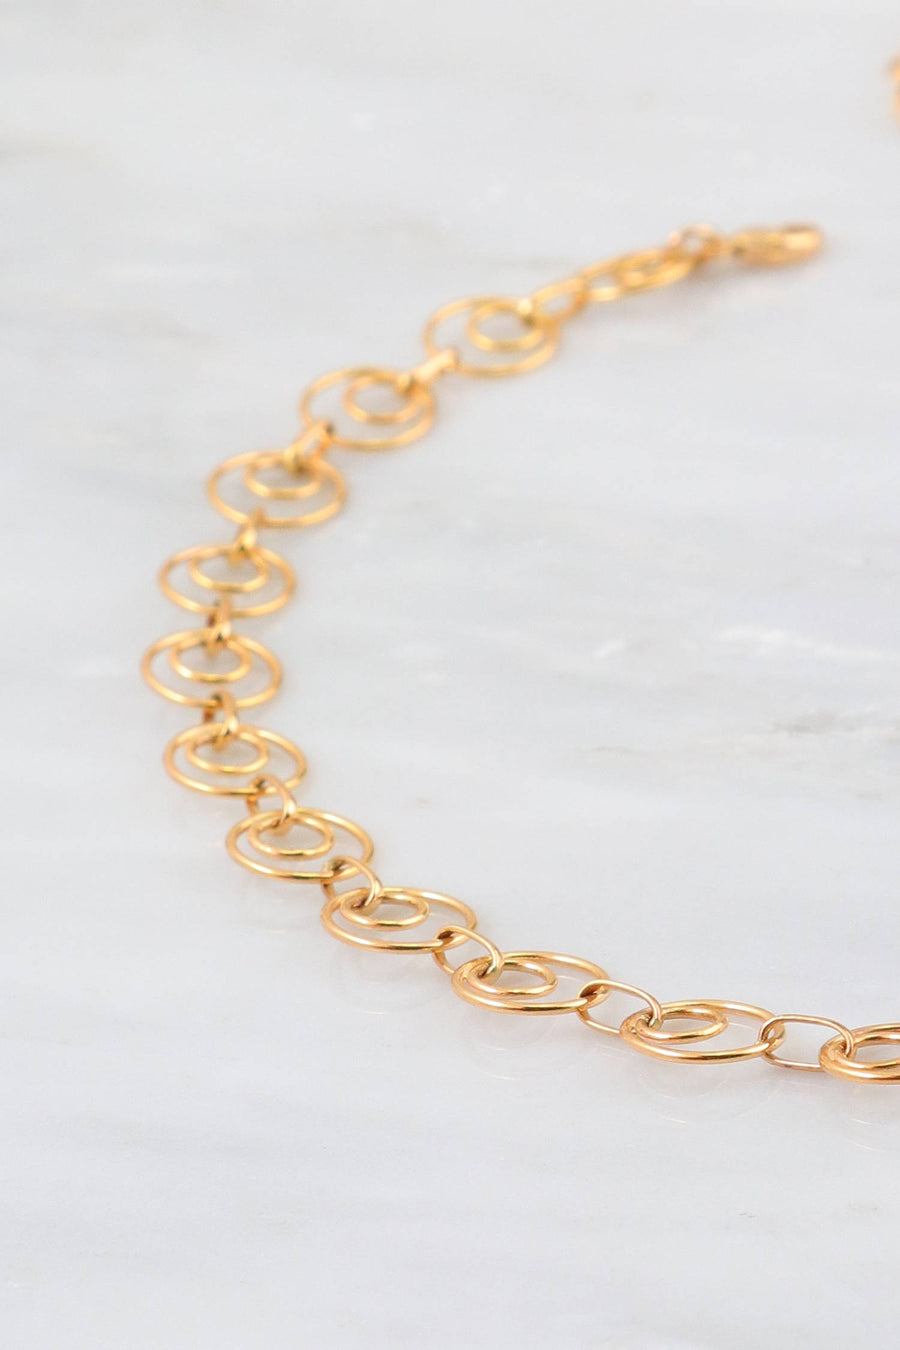 Gold Choker, Choker for Women's, Statement choker Necklace, 14k Gold Filled Choker, Circle Link Necklace, Modern Choker, Women's Necklace